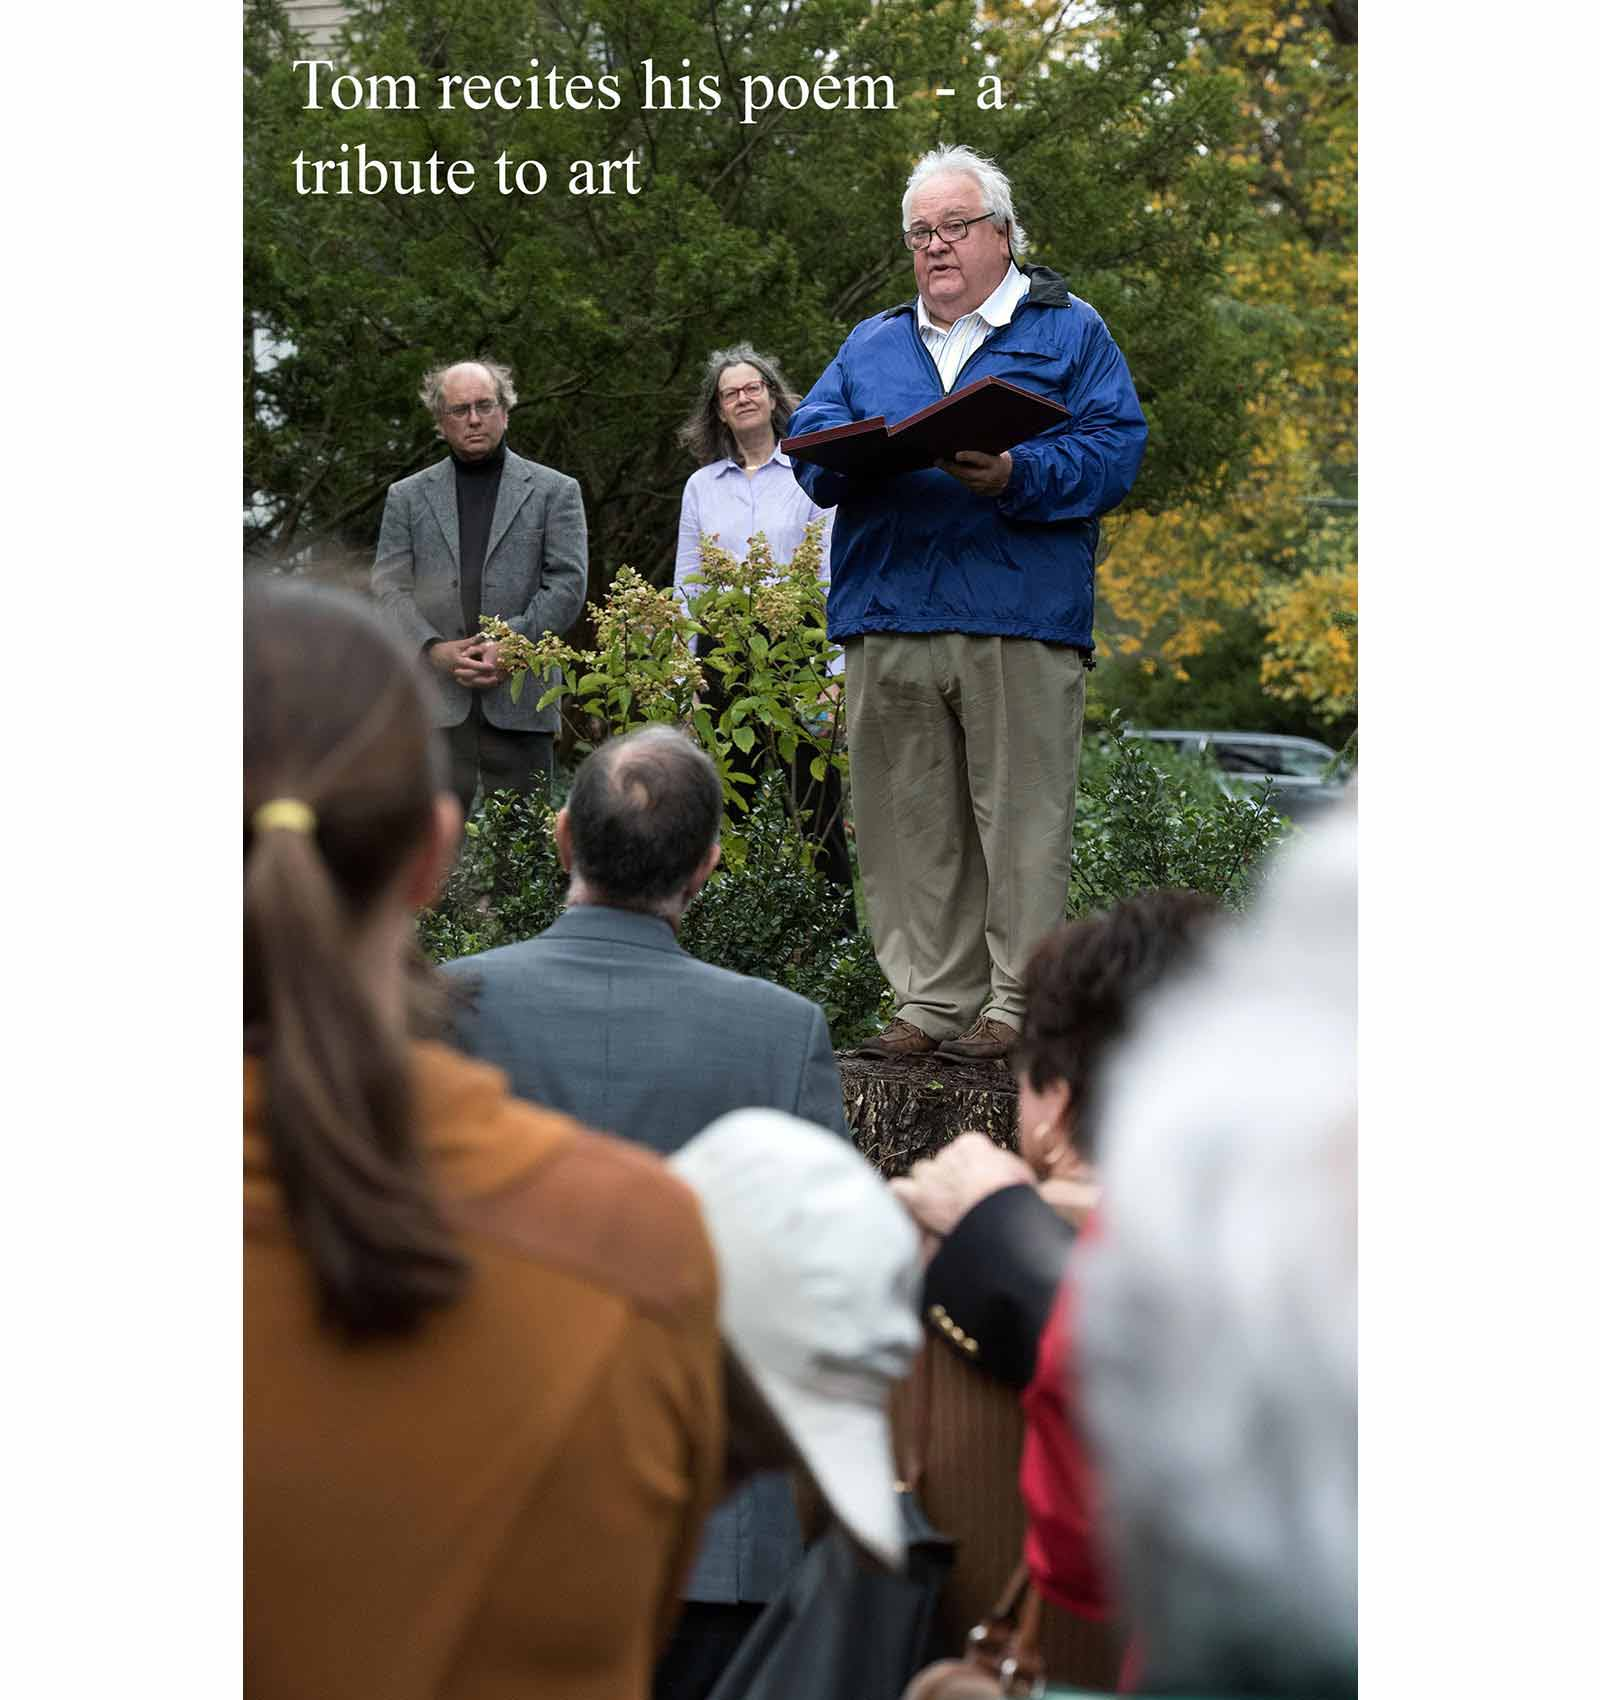 Tom Blaske dedicates his poem to the sculpture Other Side of Eden at the unveiling of the sculpture.